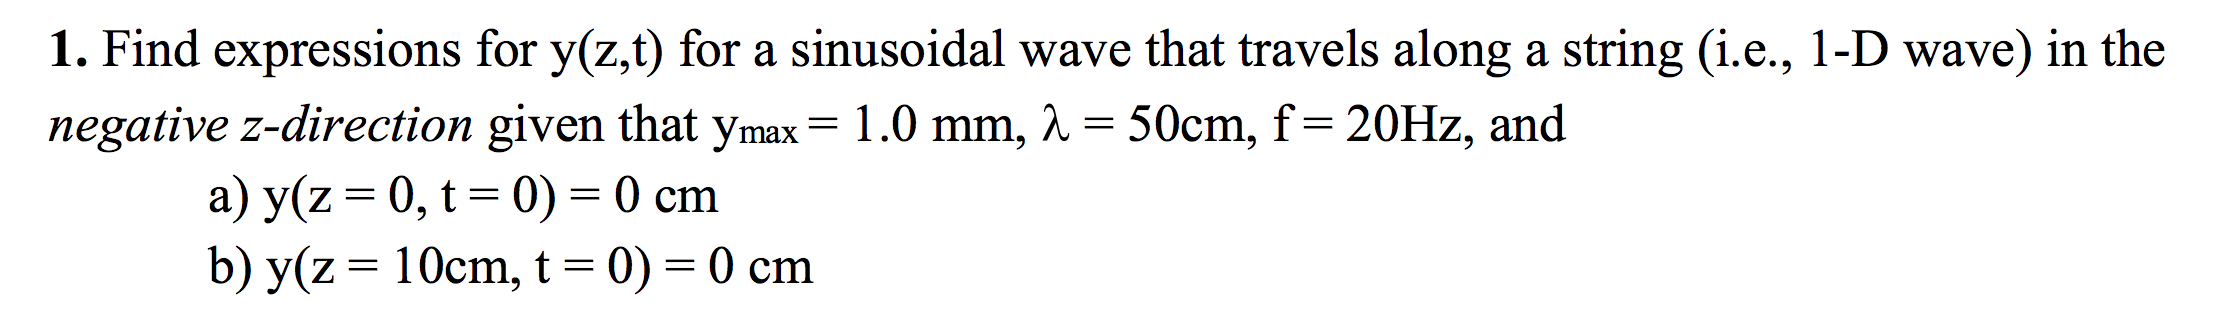 1. Find expressions for y(z,t) for a sinusoidal wave that travels along a string (i.e., 1-D wave) in the negative z-direction